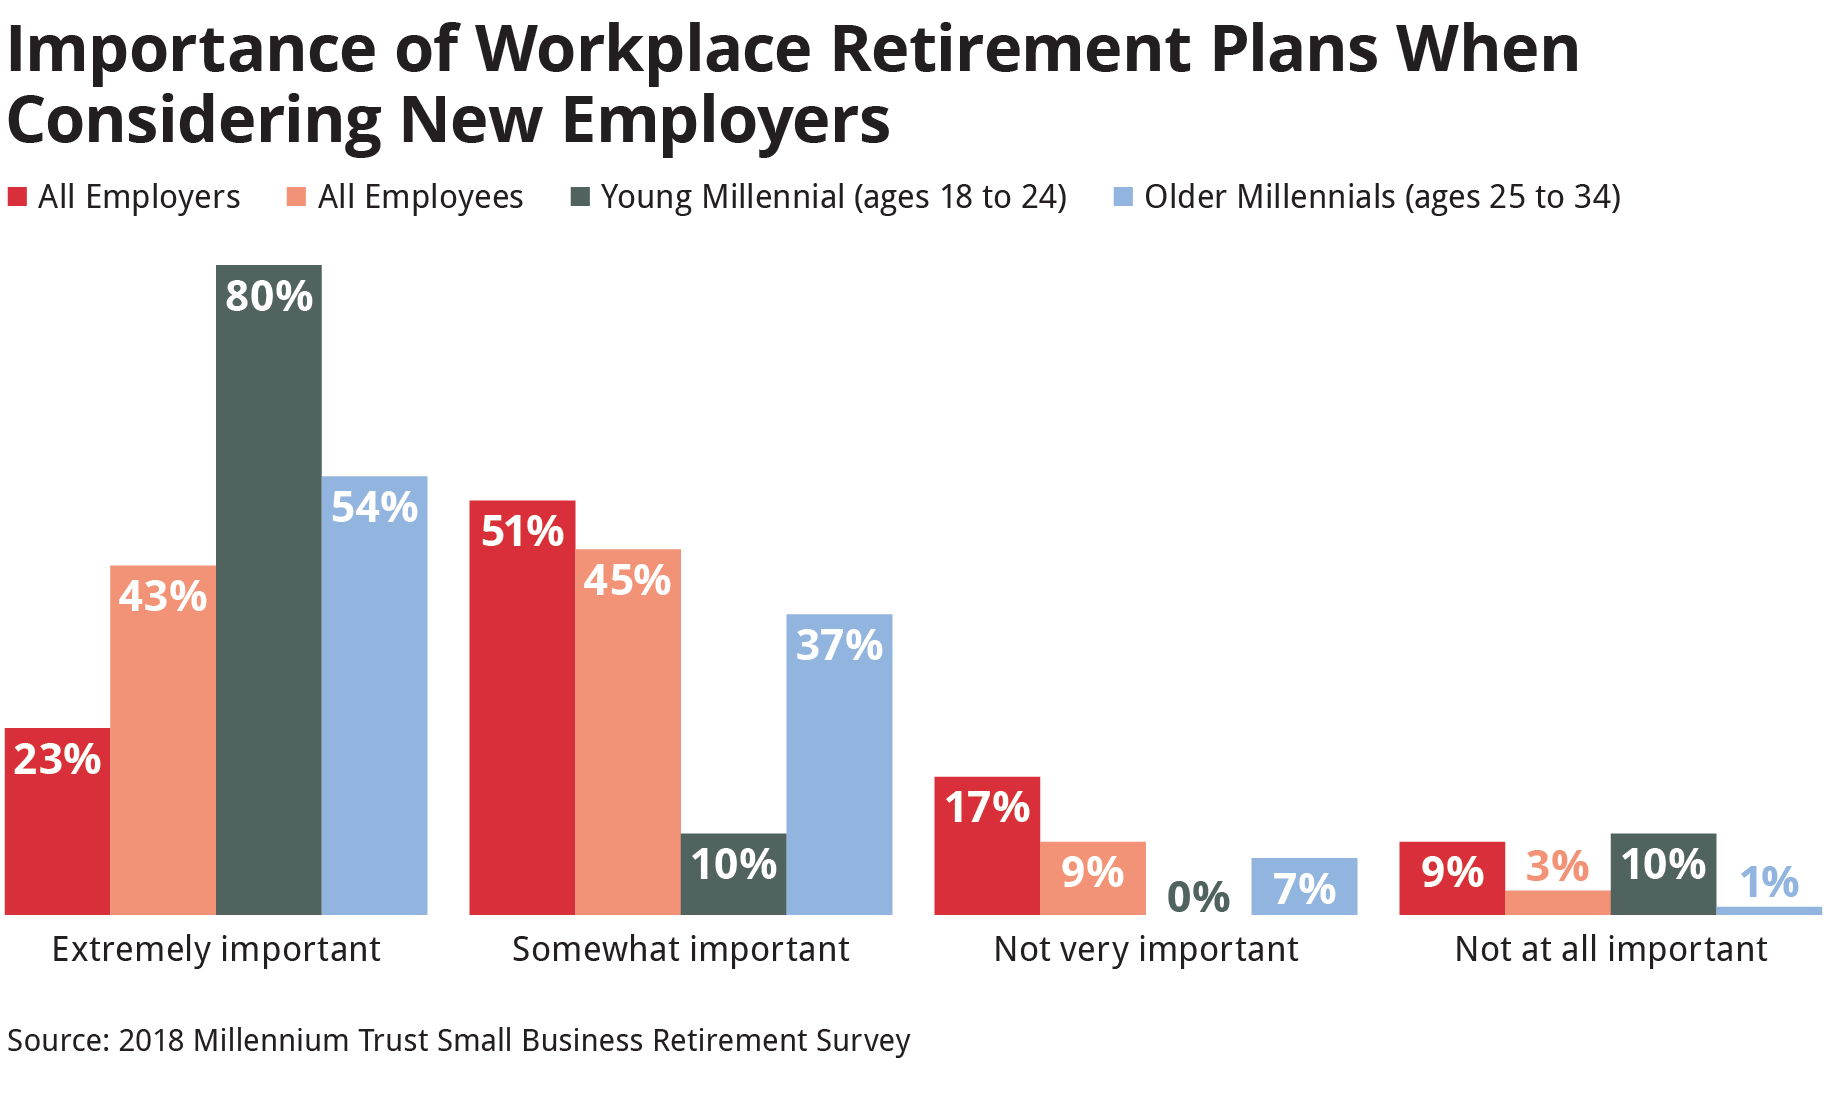 Millennial Misconceptions: Younger Workers Prioritize Retirement